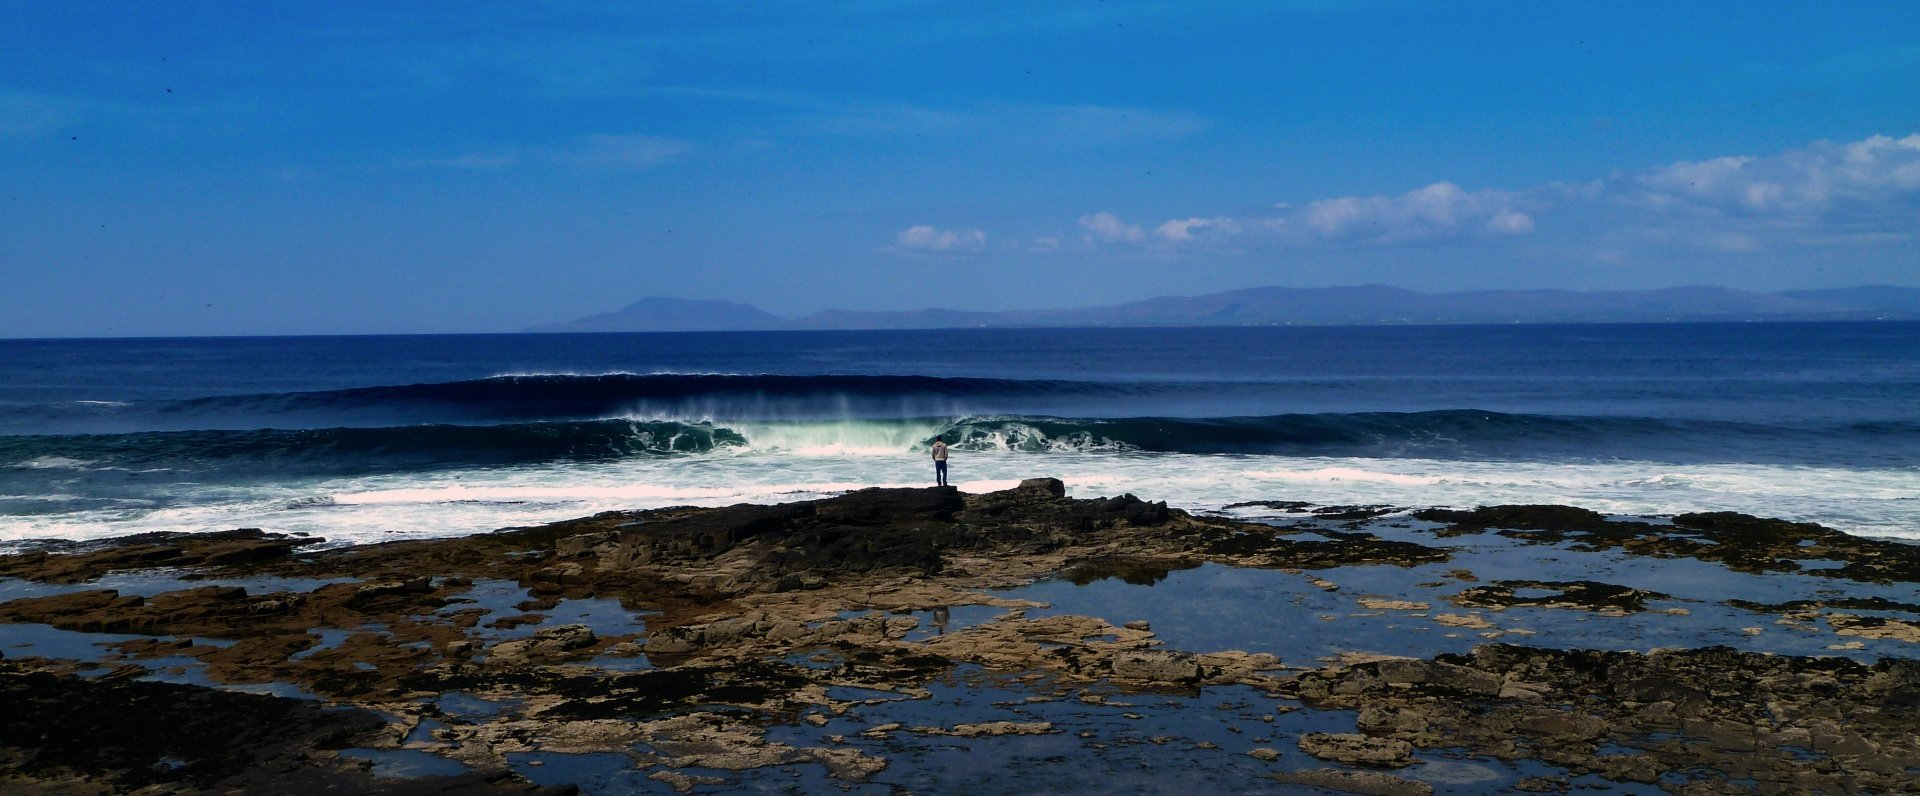 Kristian Cowin's photo of Bundoran - The Peak